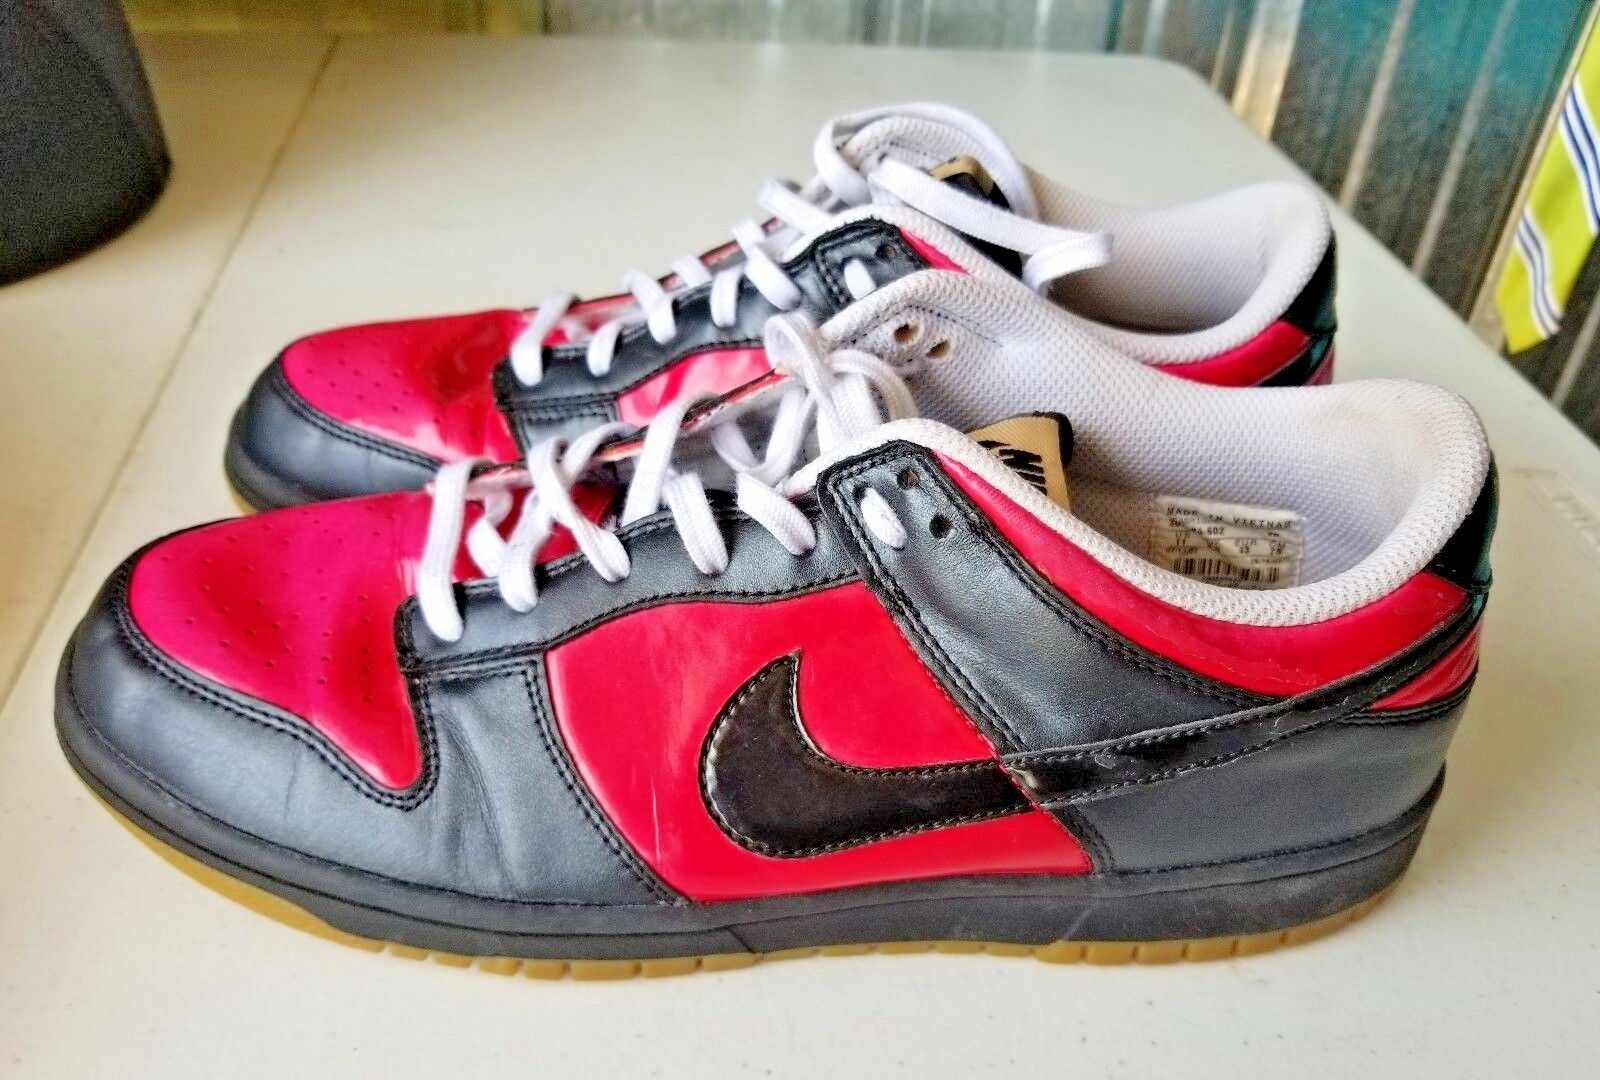 Nike Dunk Low 07' Pink Patent Gum Sole Sneakers Hipster Multi Women 11 Athletic